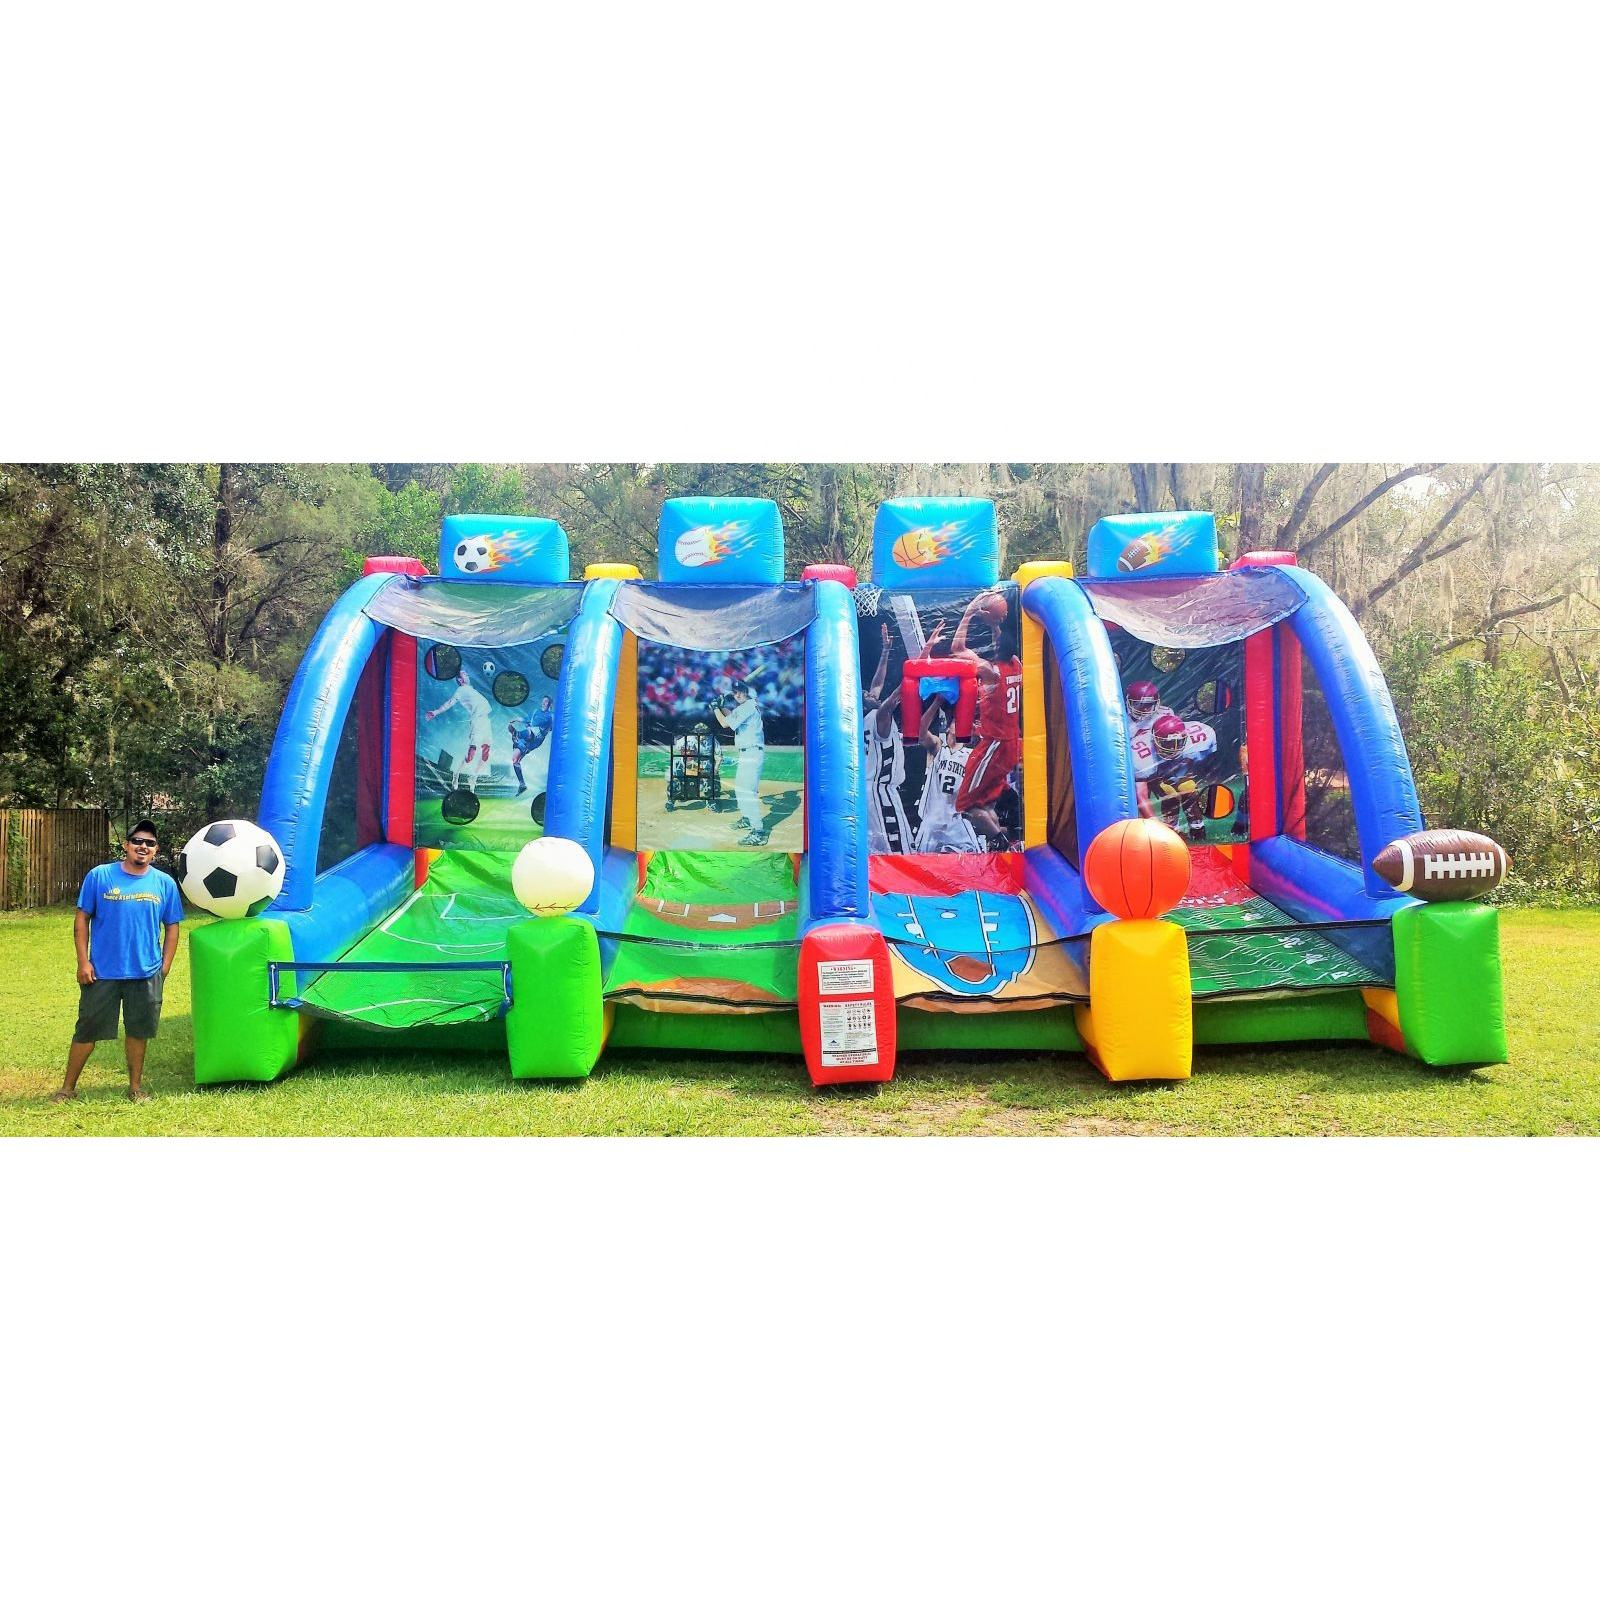 High Quality Inflatable 4 In 1 Inflatable Olahraga Permainan Inflatable Karnaval Permainan Booth